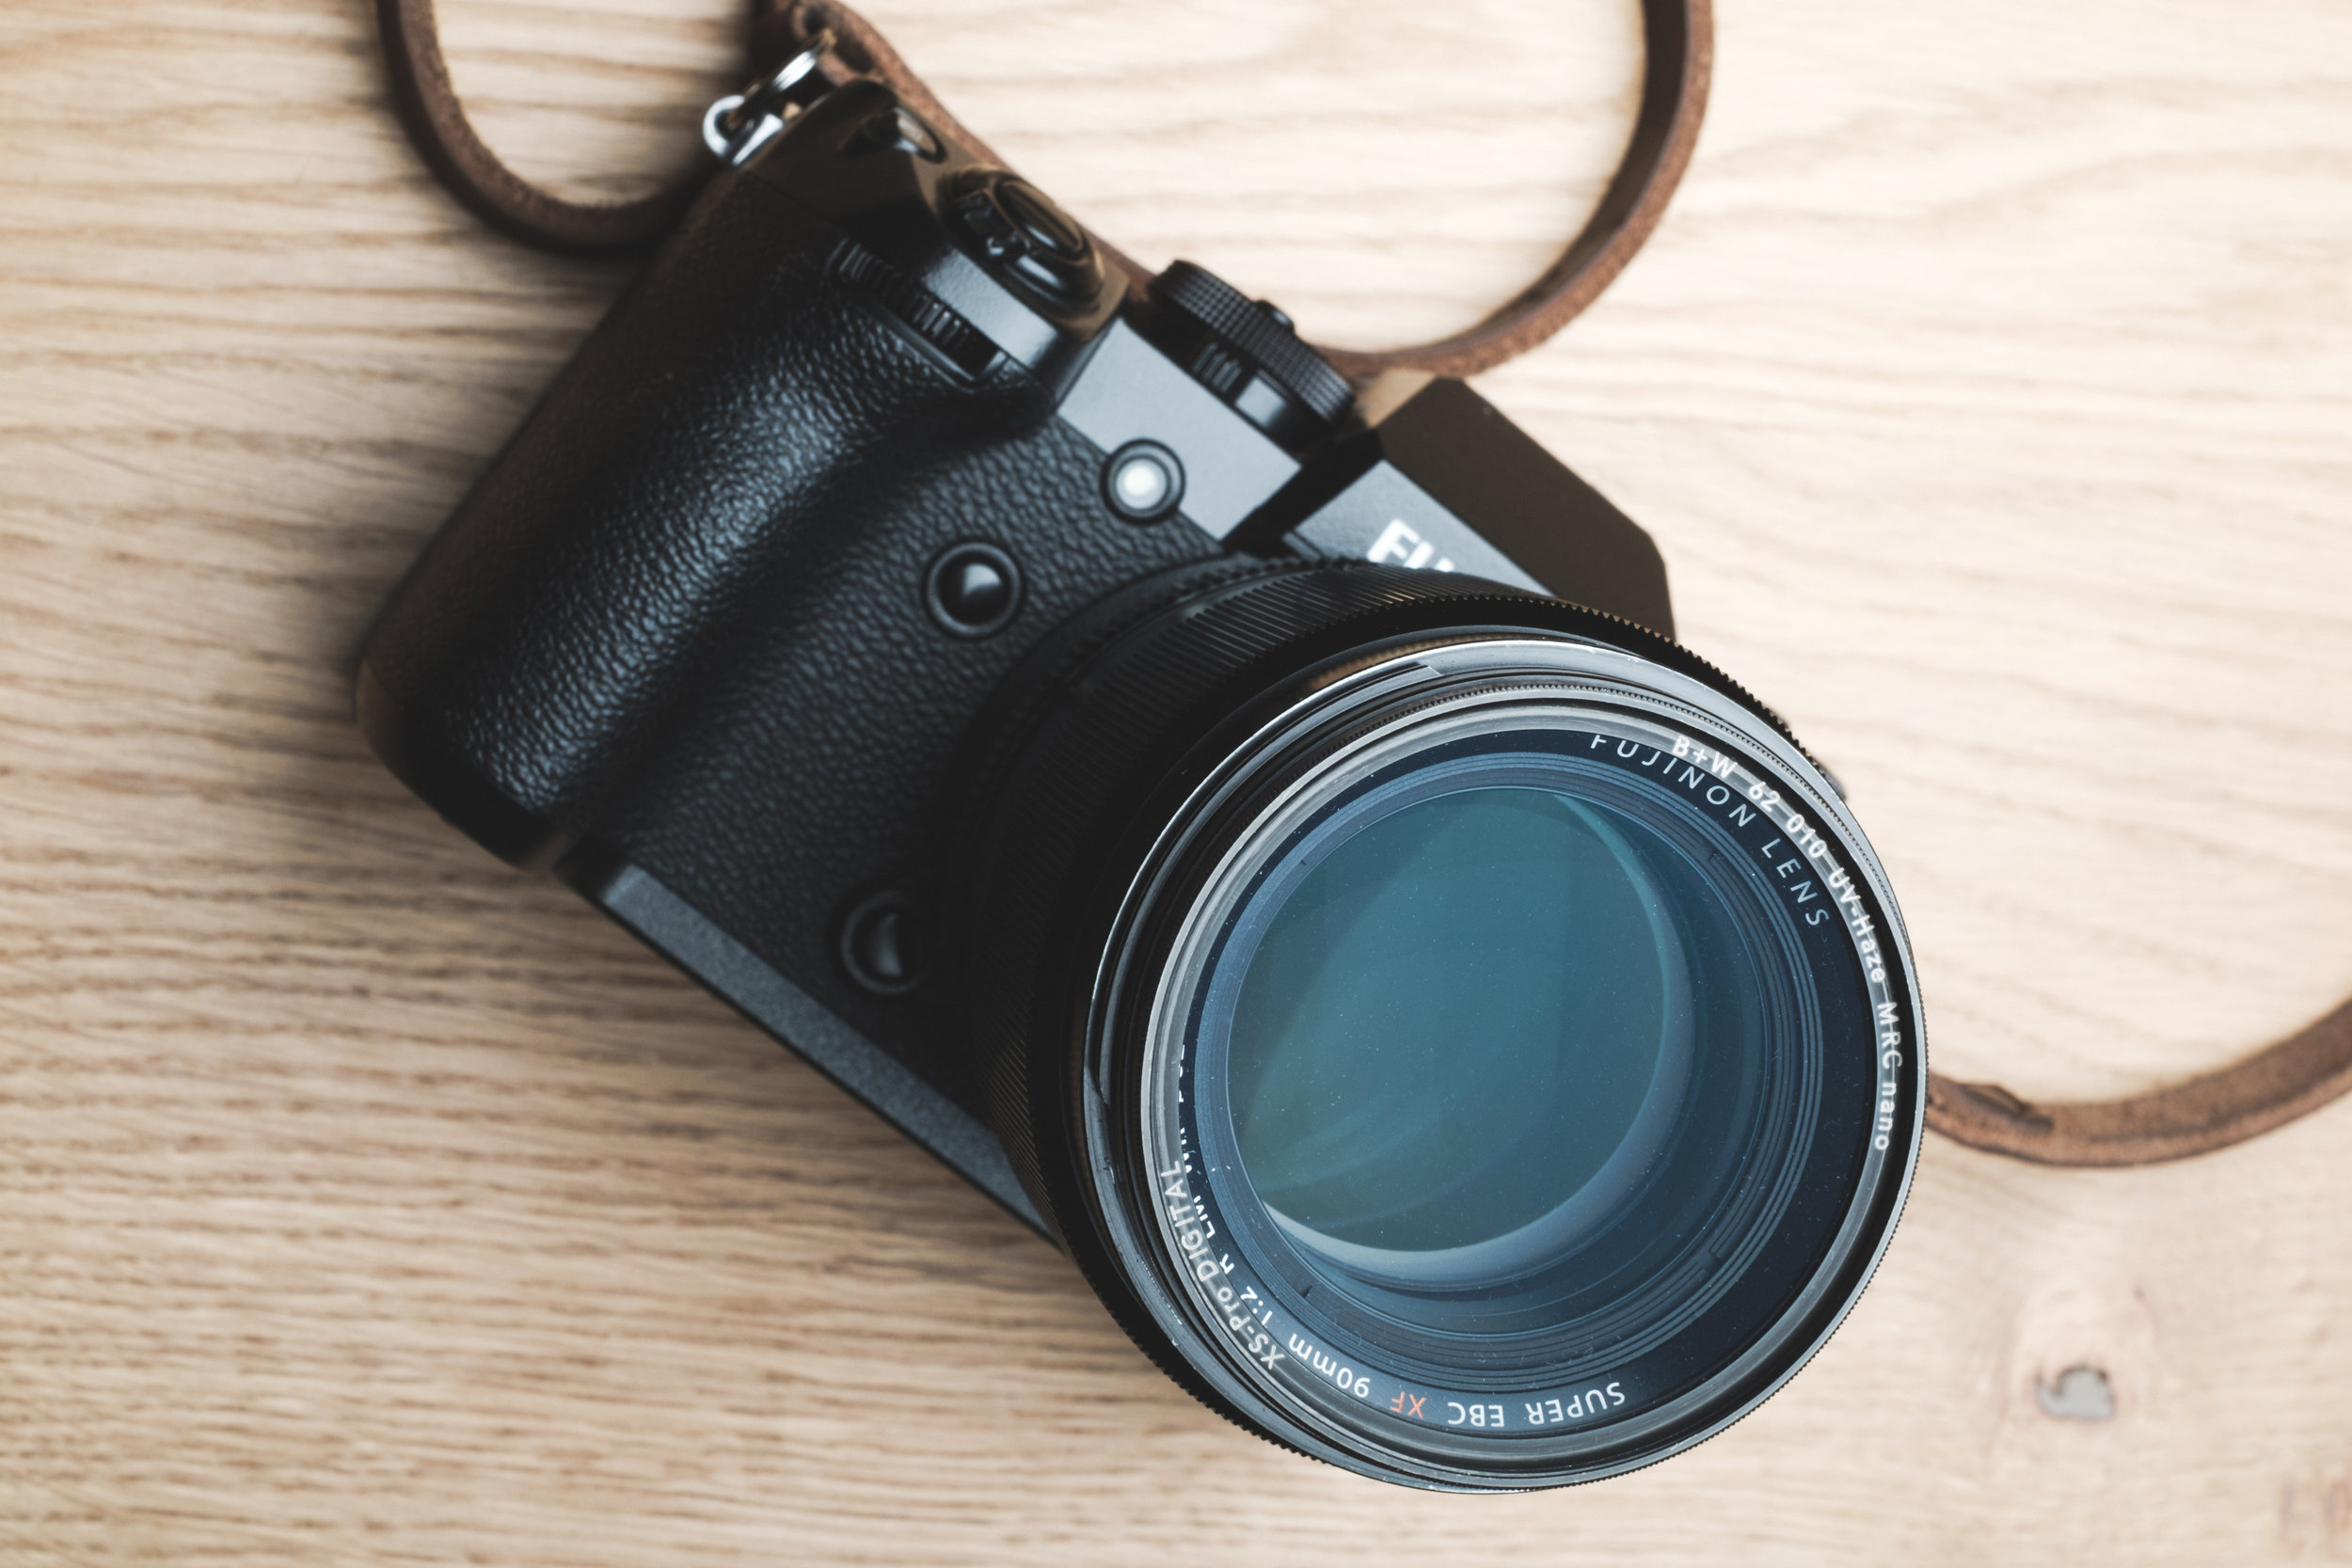 Fujifilm X-H1 with XF 90mm f/2 R LM WR